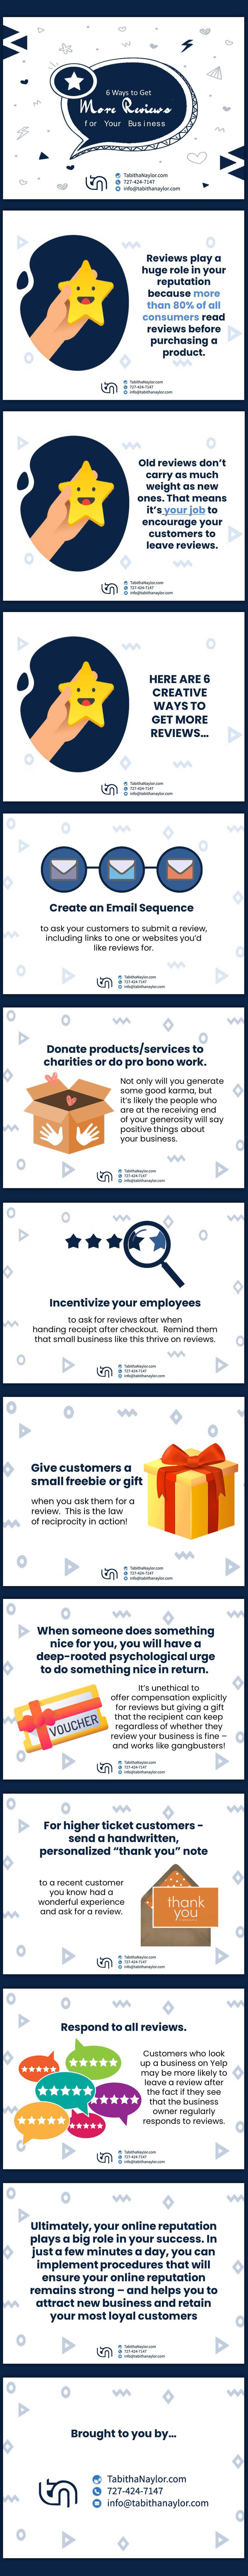 6-Ways-to-Get-More-Reviews-for-Your-Business